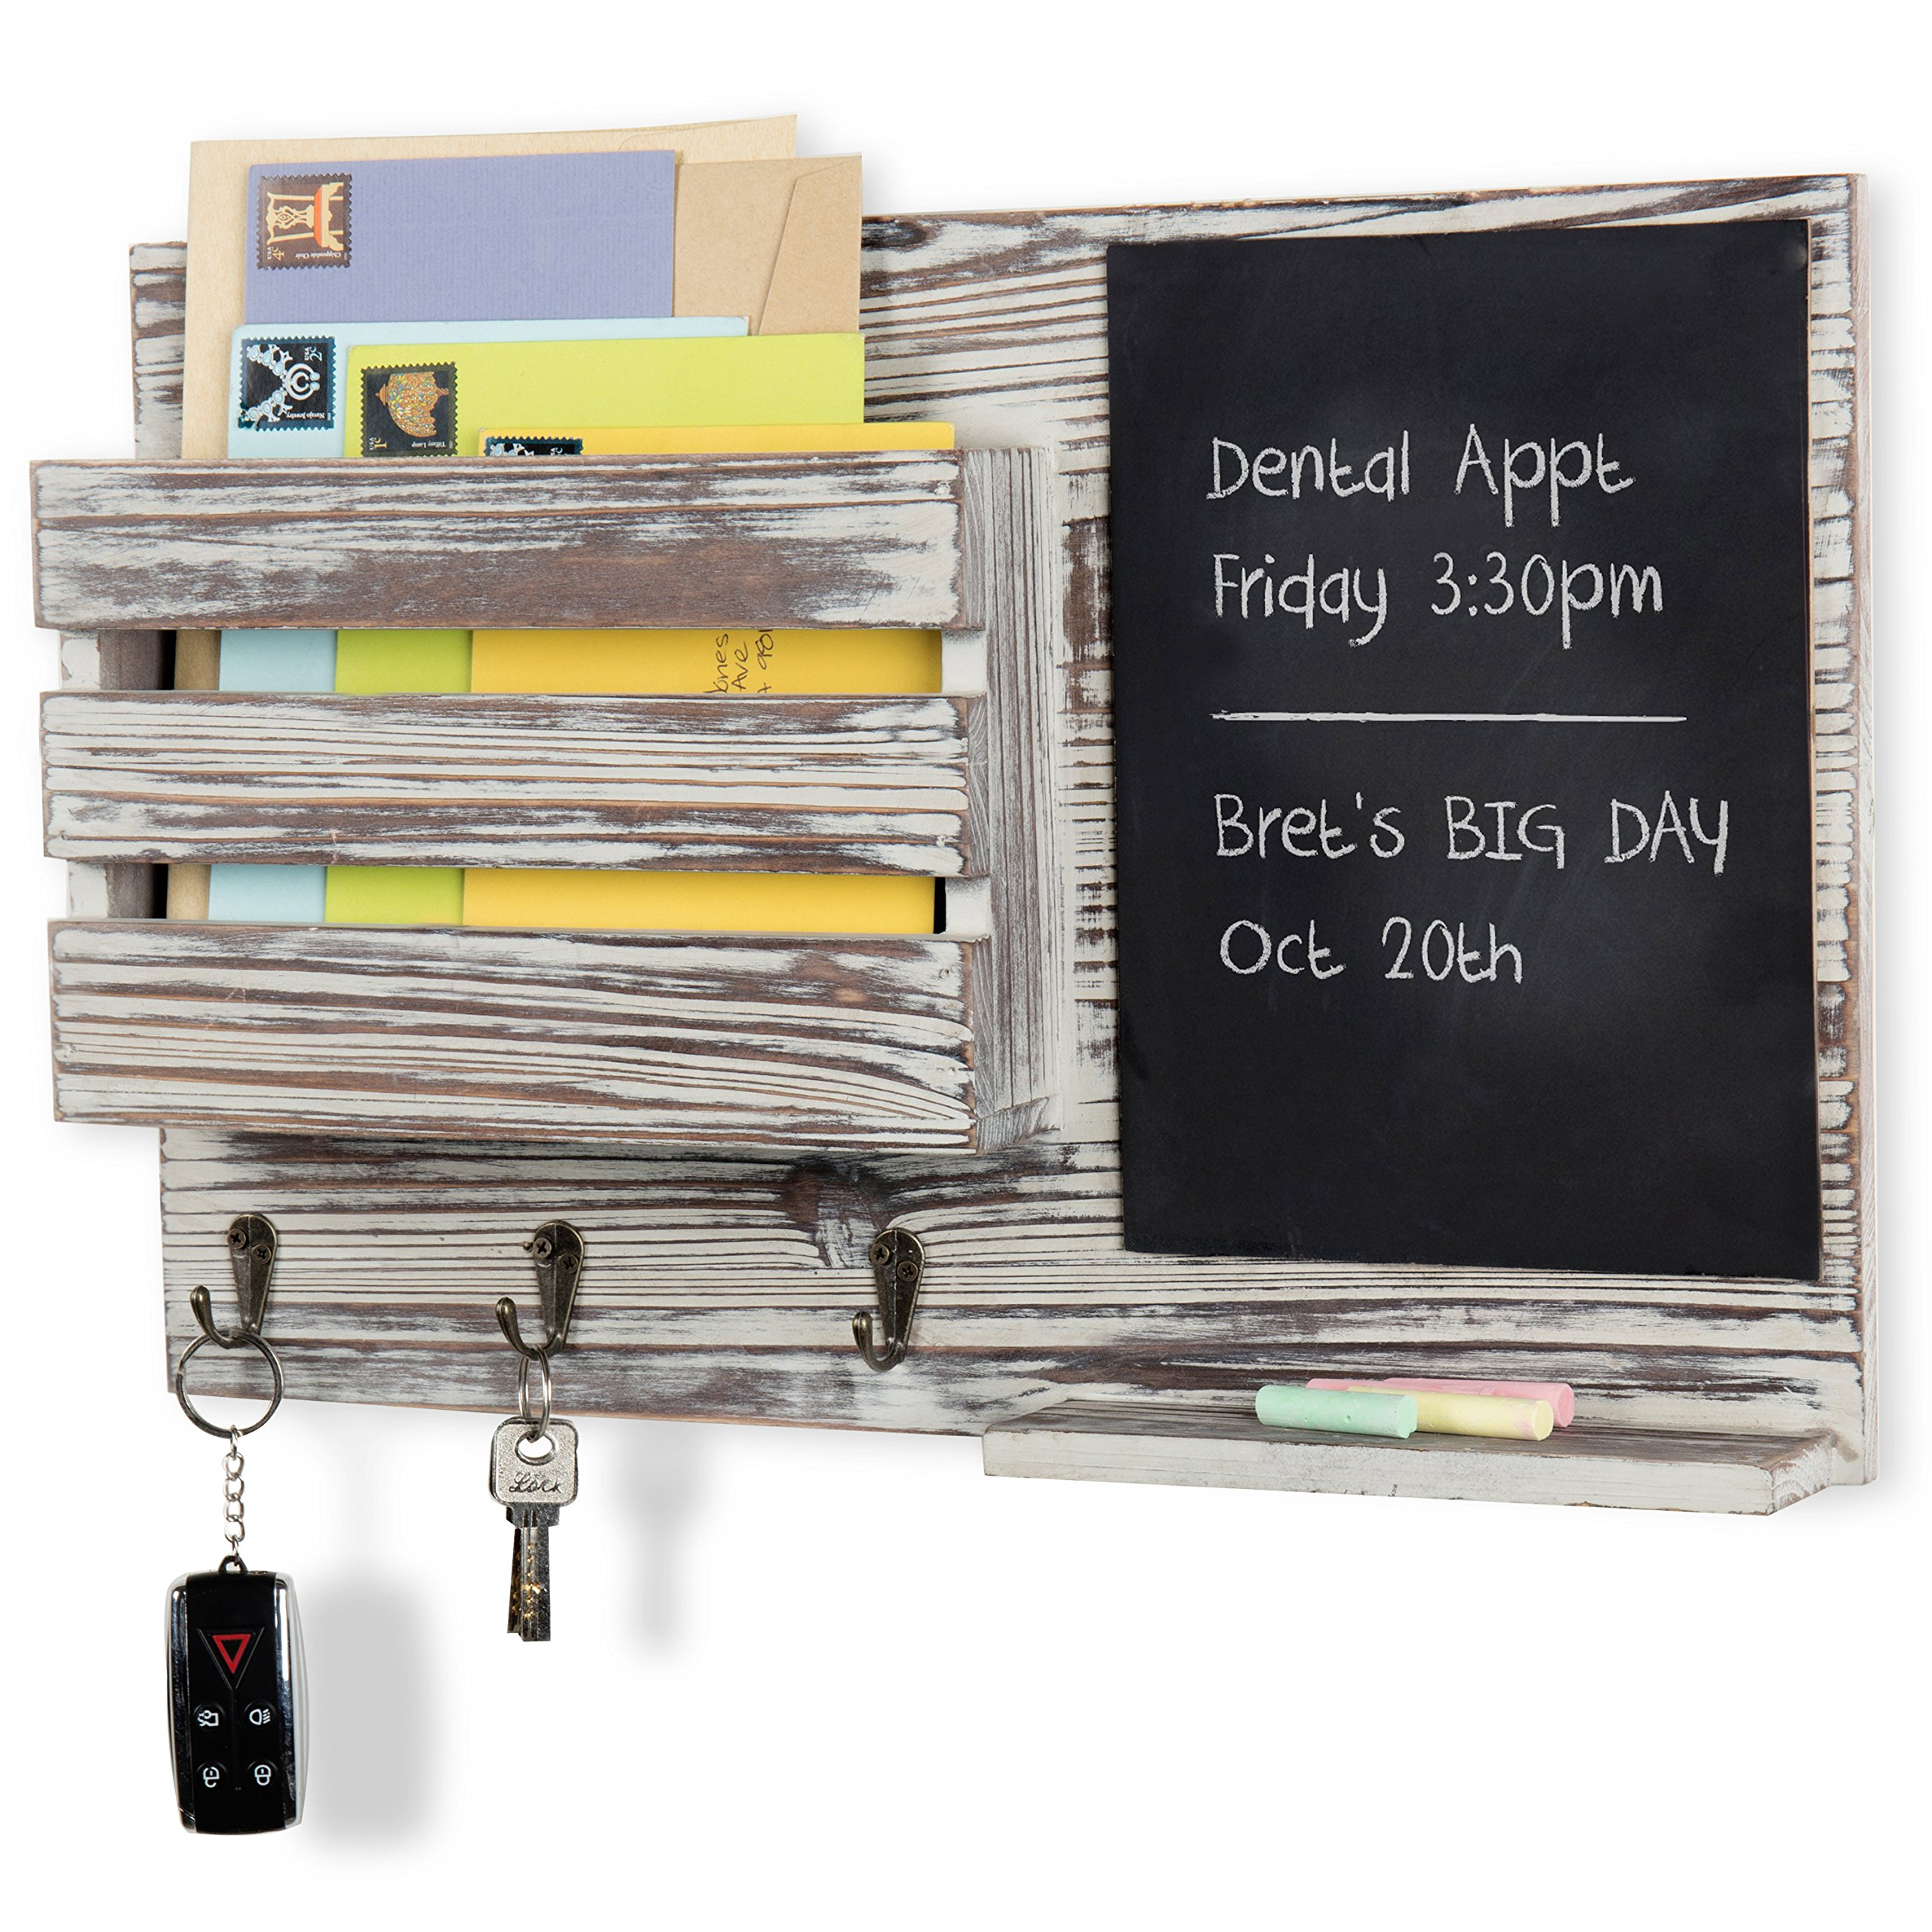 MyGift Torched Wood Wall-Mounted Mail Organizer with Chalkboard & 3 Key Hooks